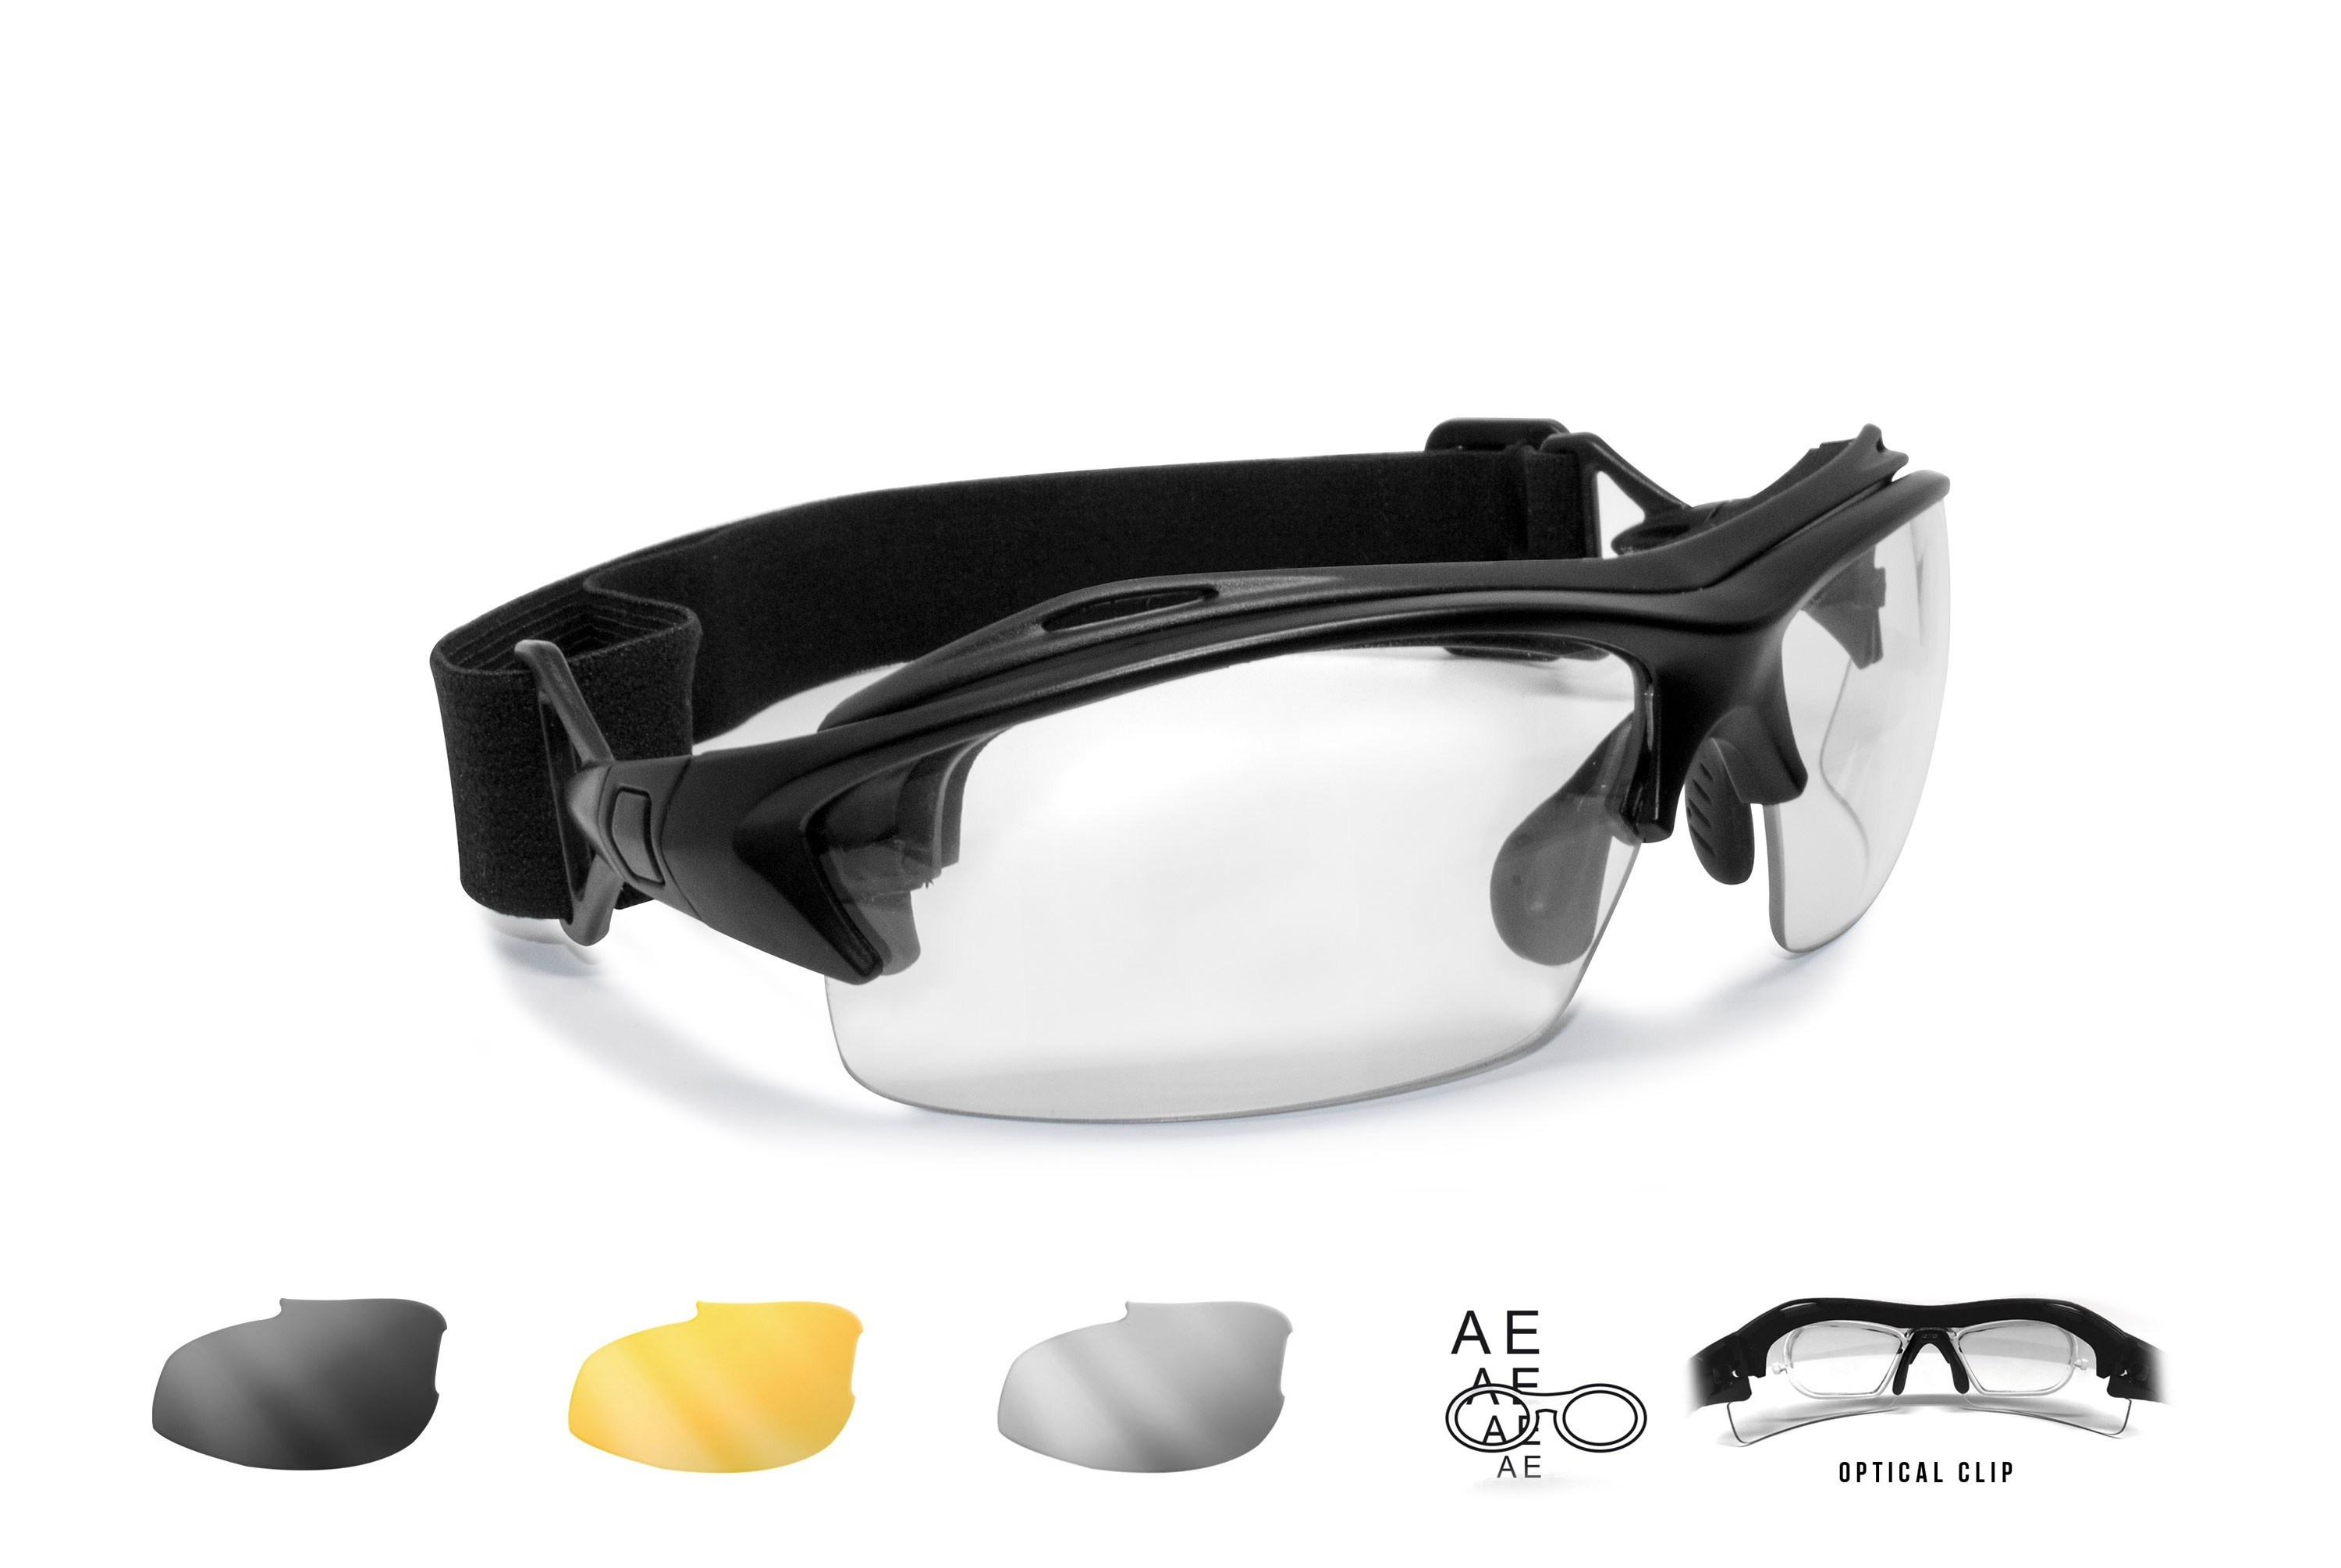 Motorcycle Prescription Glasses and Goggles – 3 Interchangeable Antifog Lenses - Removable Clip for Pescription Lenses - Interchangeable Arms and Strap – AF399 by Bertoni Italy